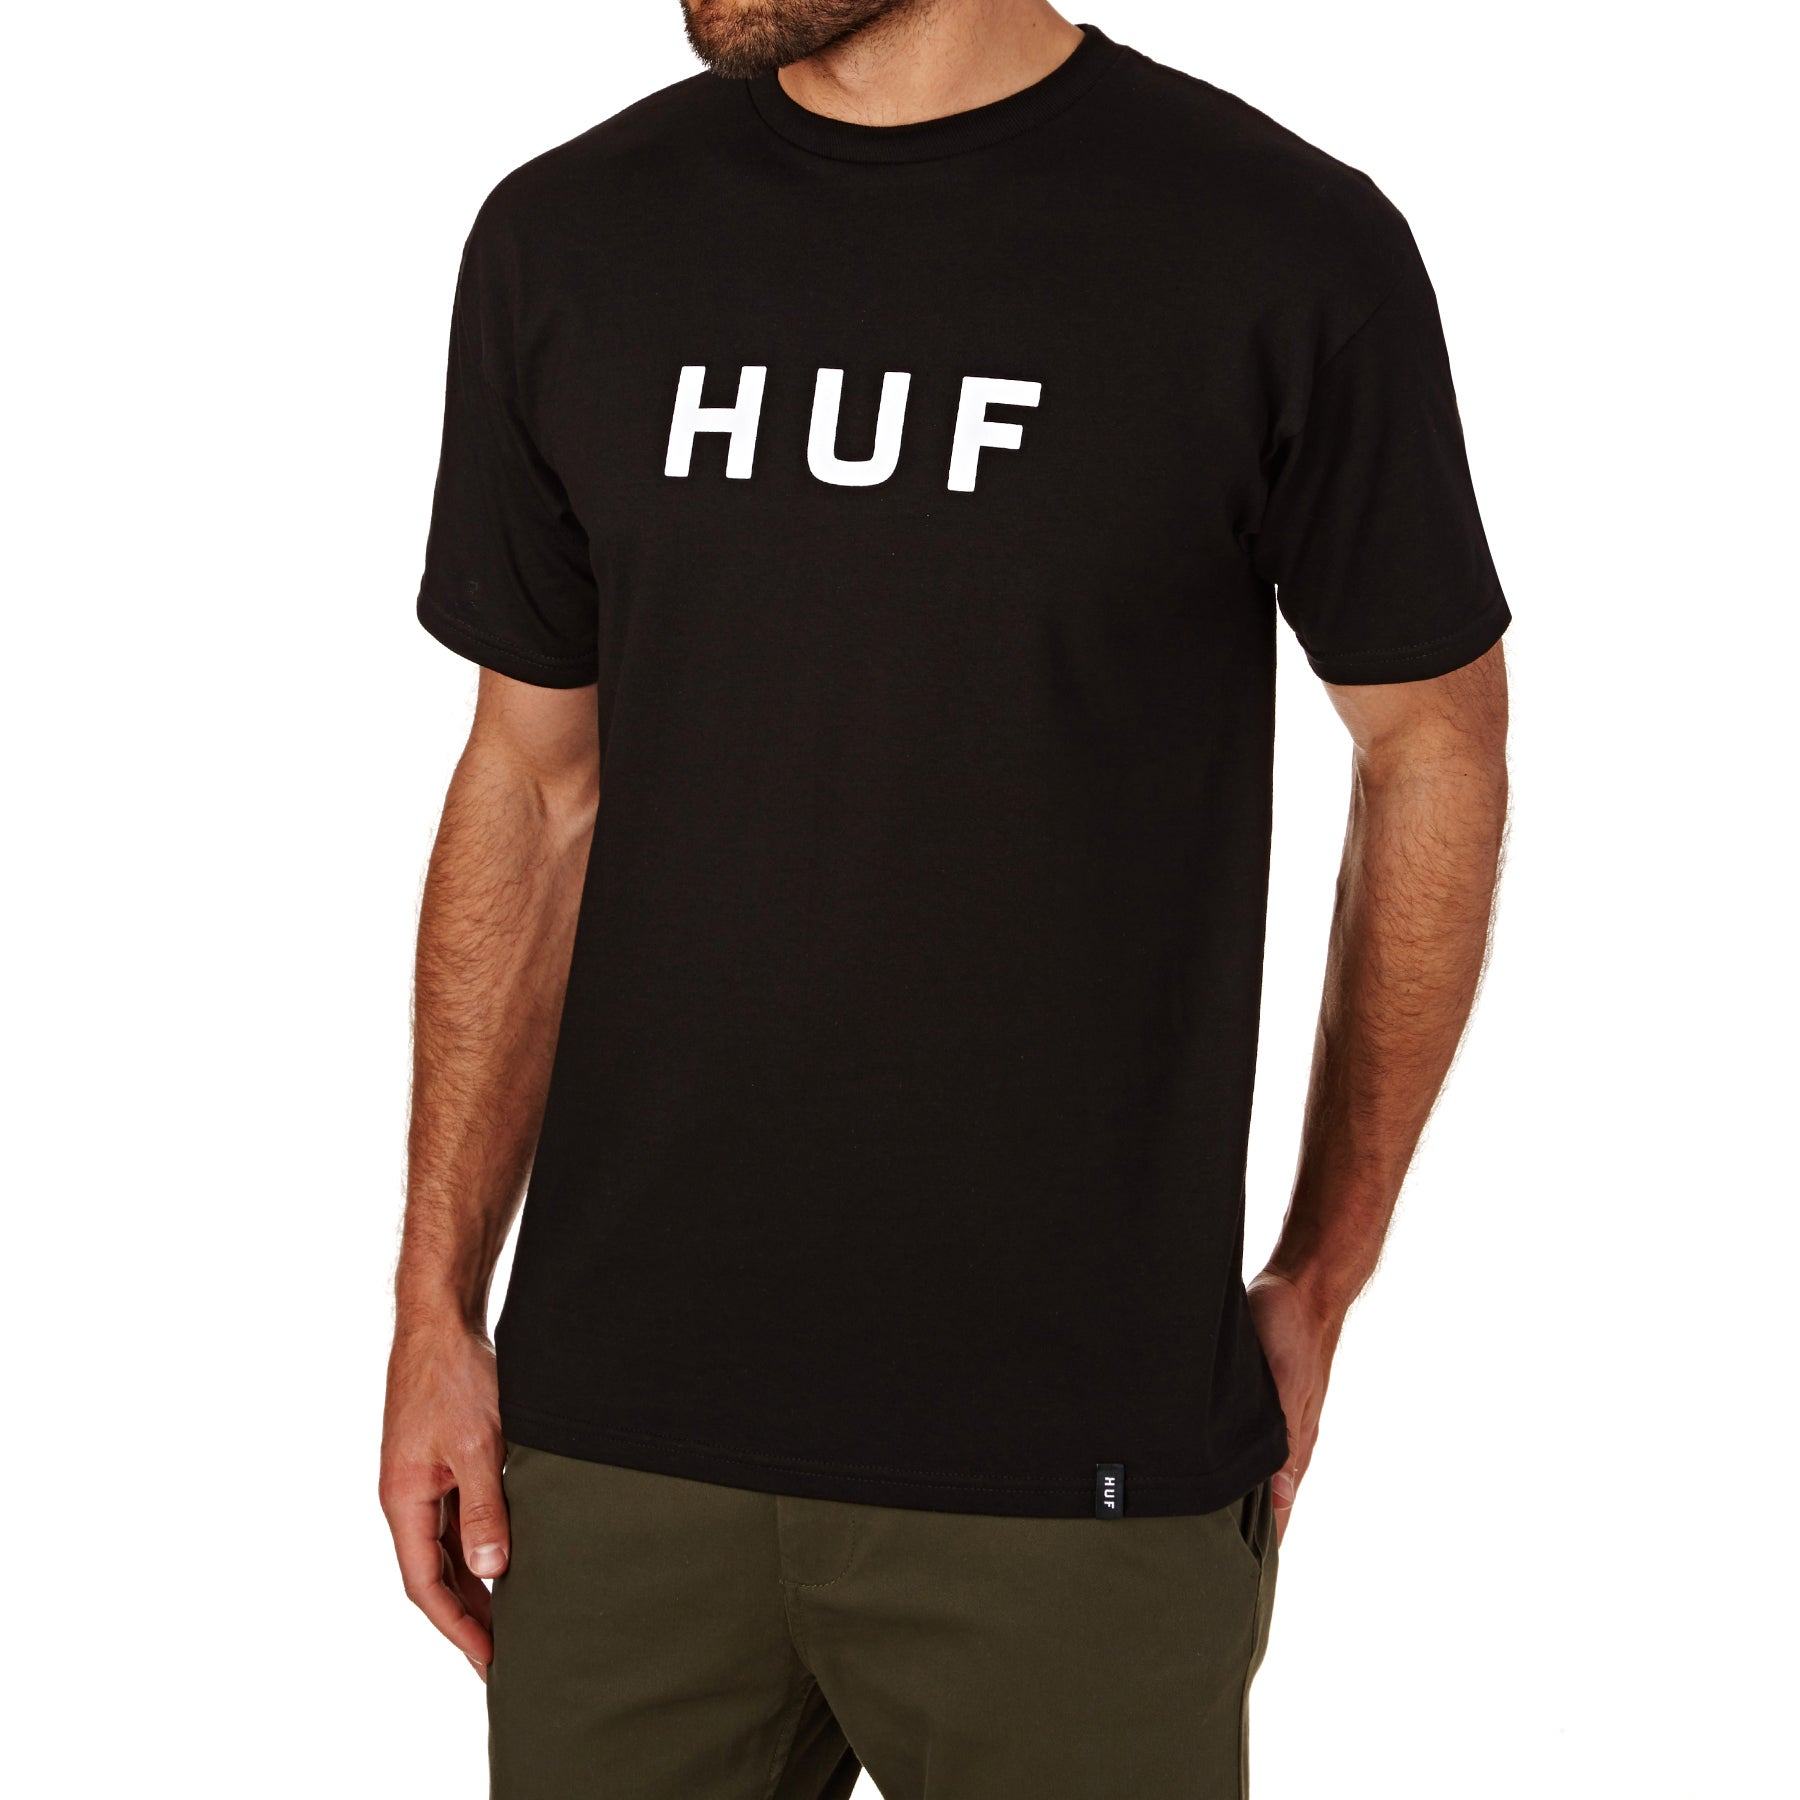 Huf Original Logo Short Sleeve T-Shirt